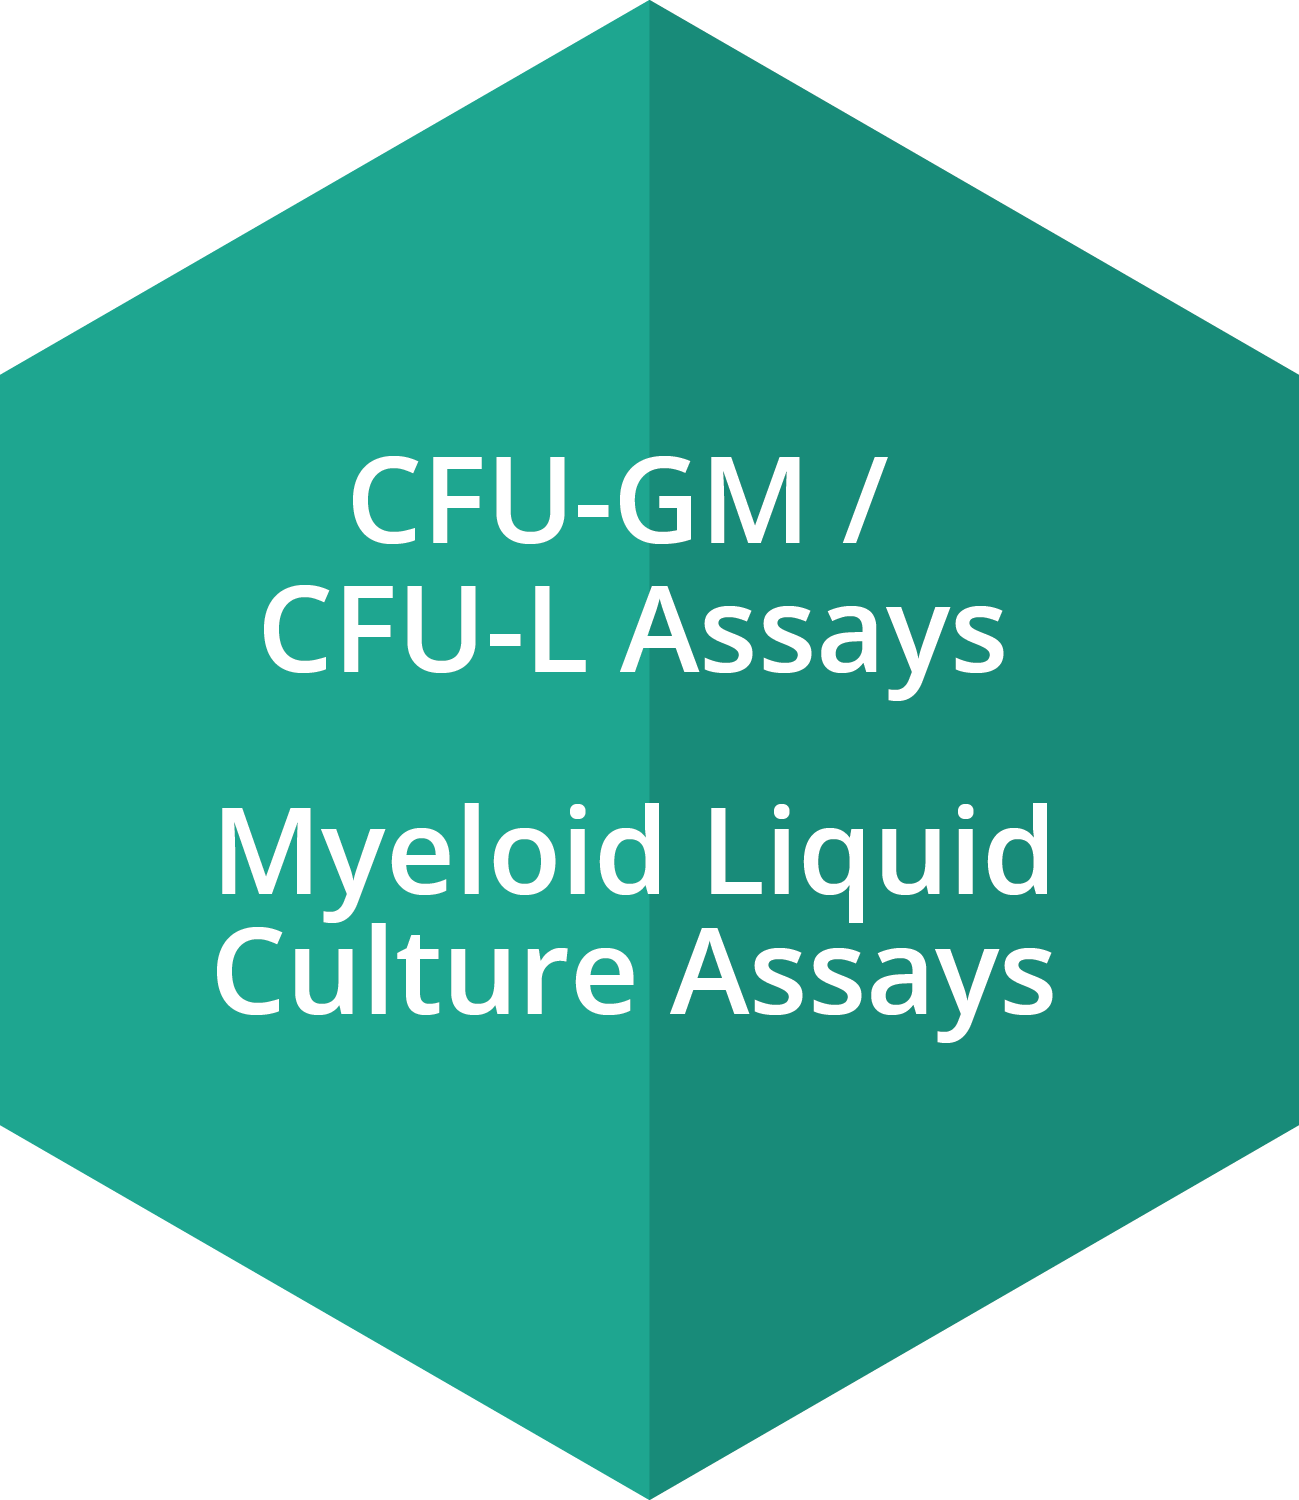 CFU-GM assays, CFU-L assays, Myeloid Liquid Culture Assays